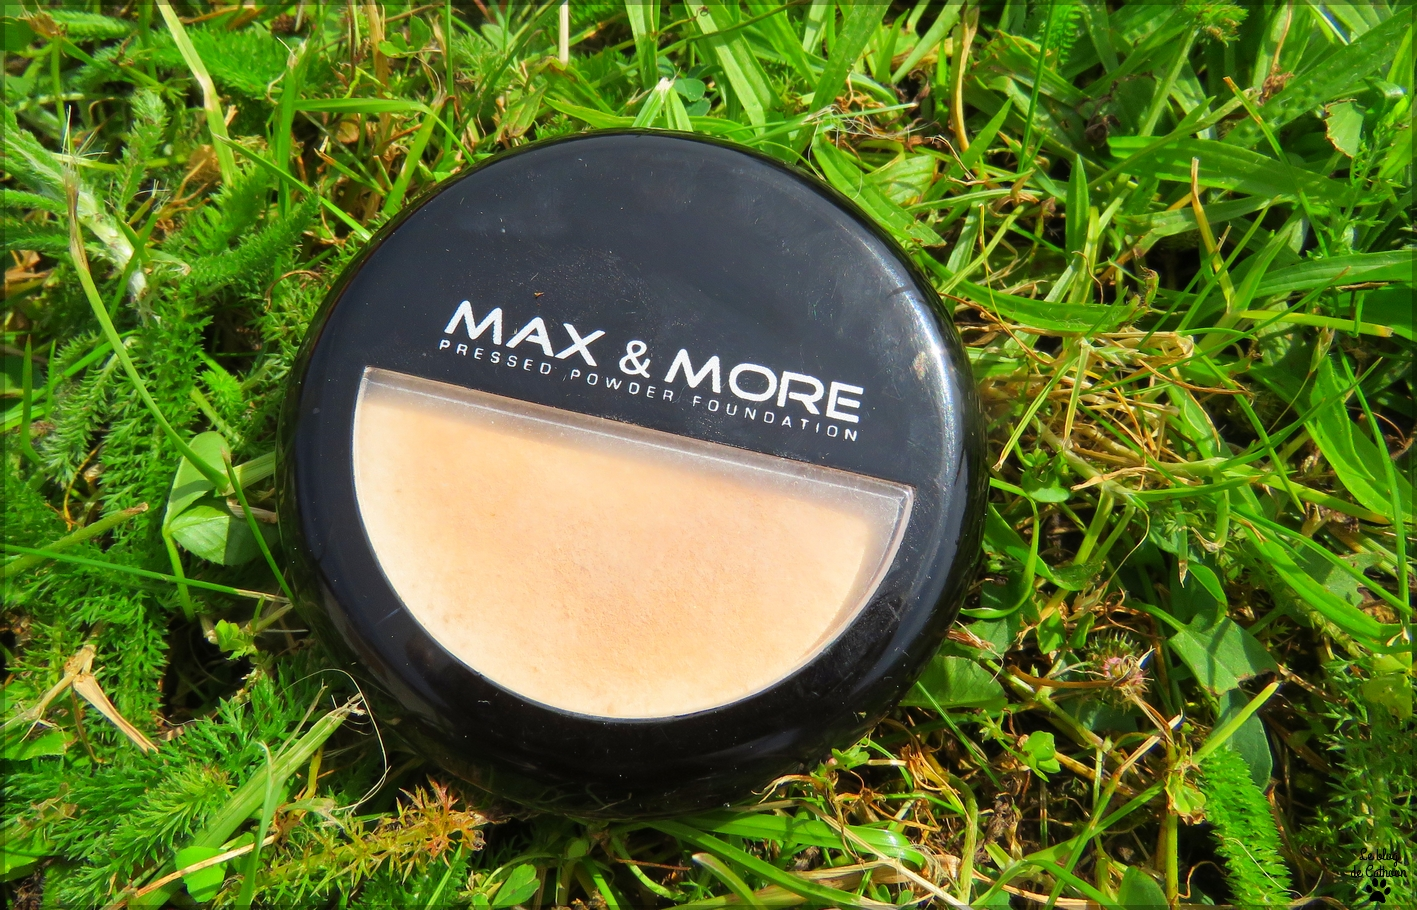 Pressed Powder Fondation - Poudre Compacte - Max & More